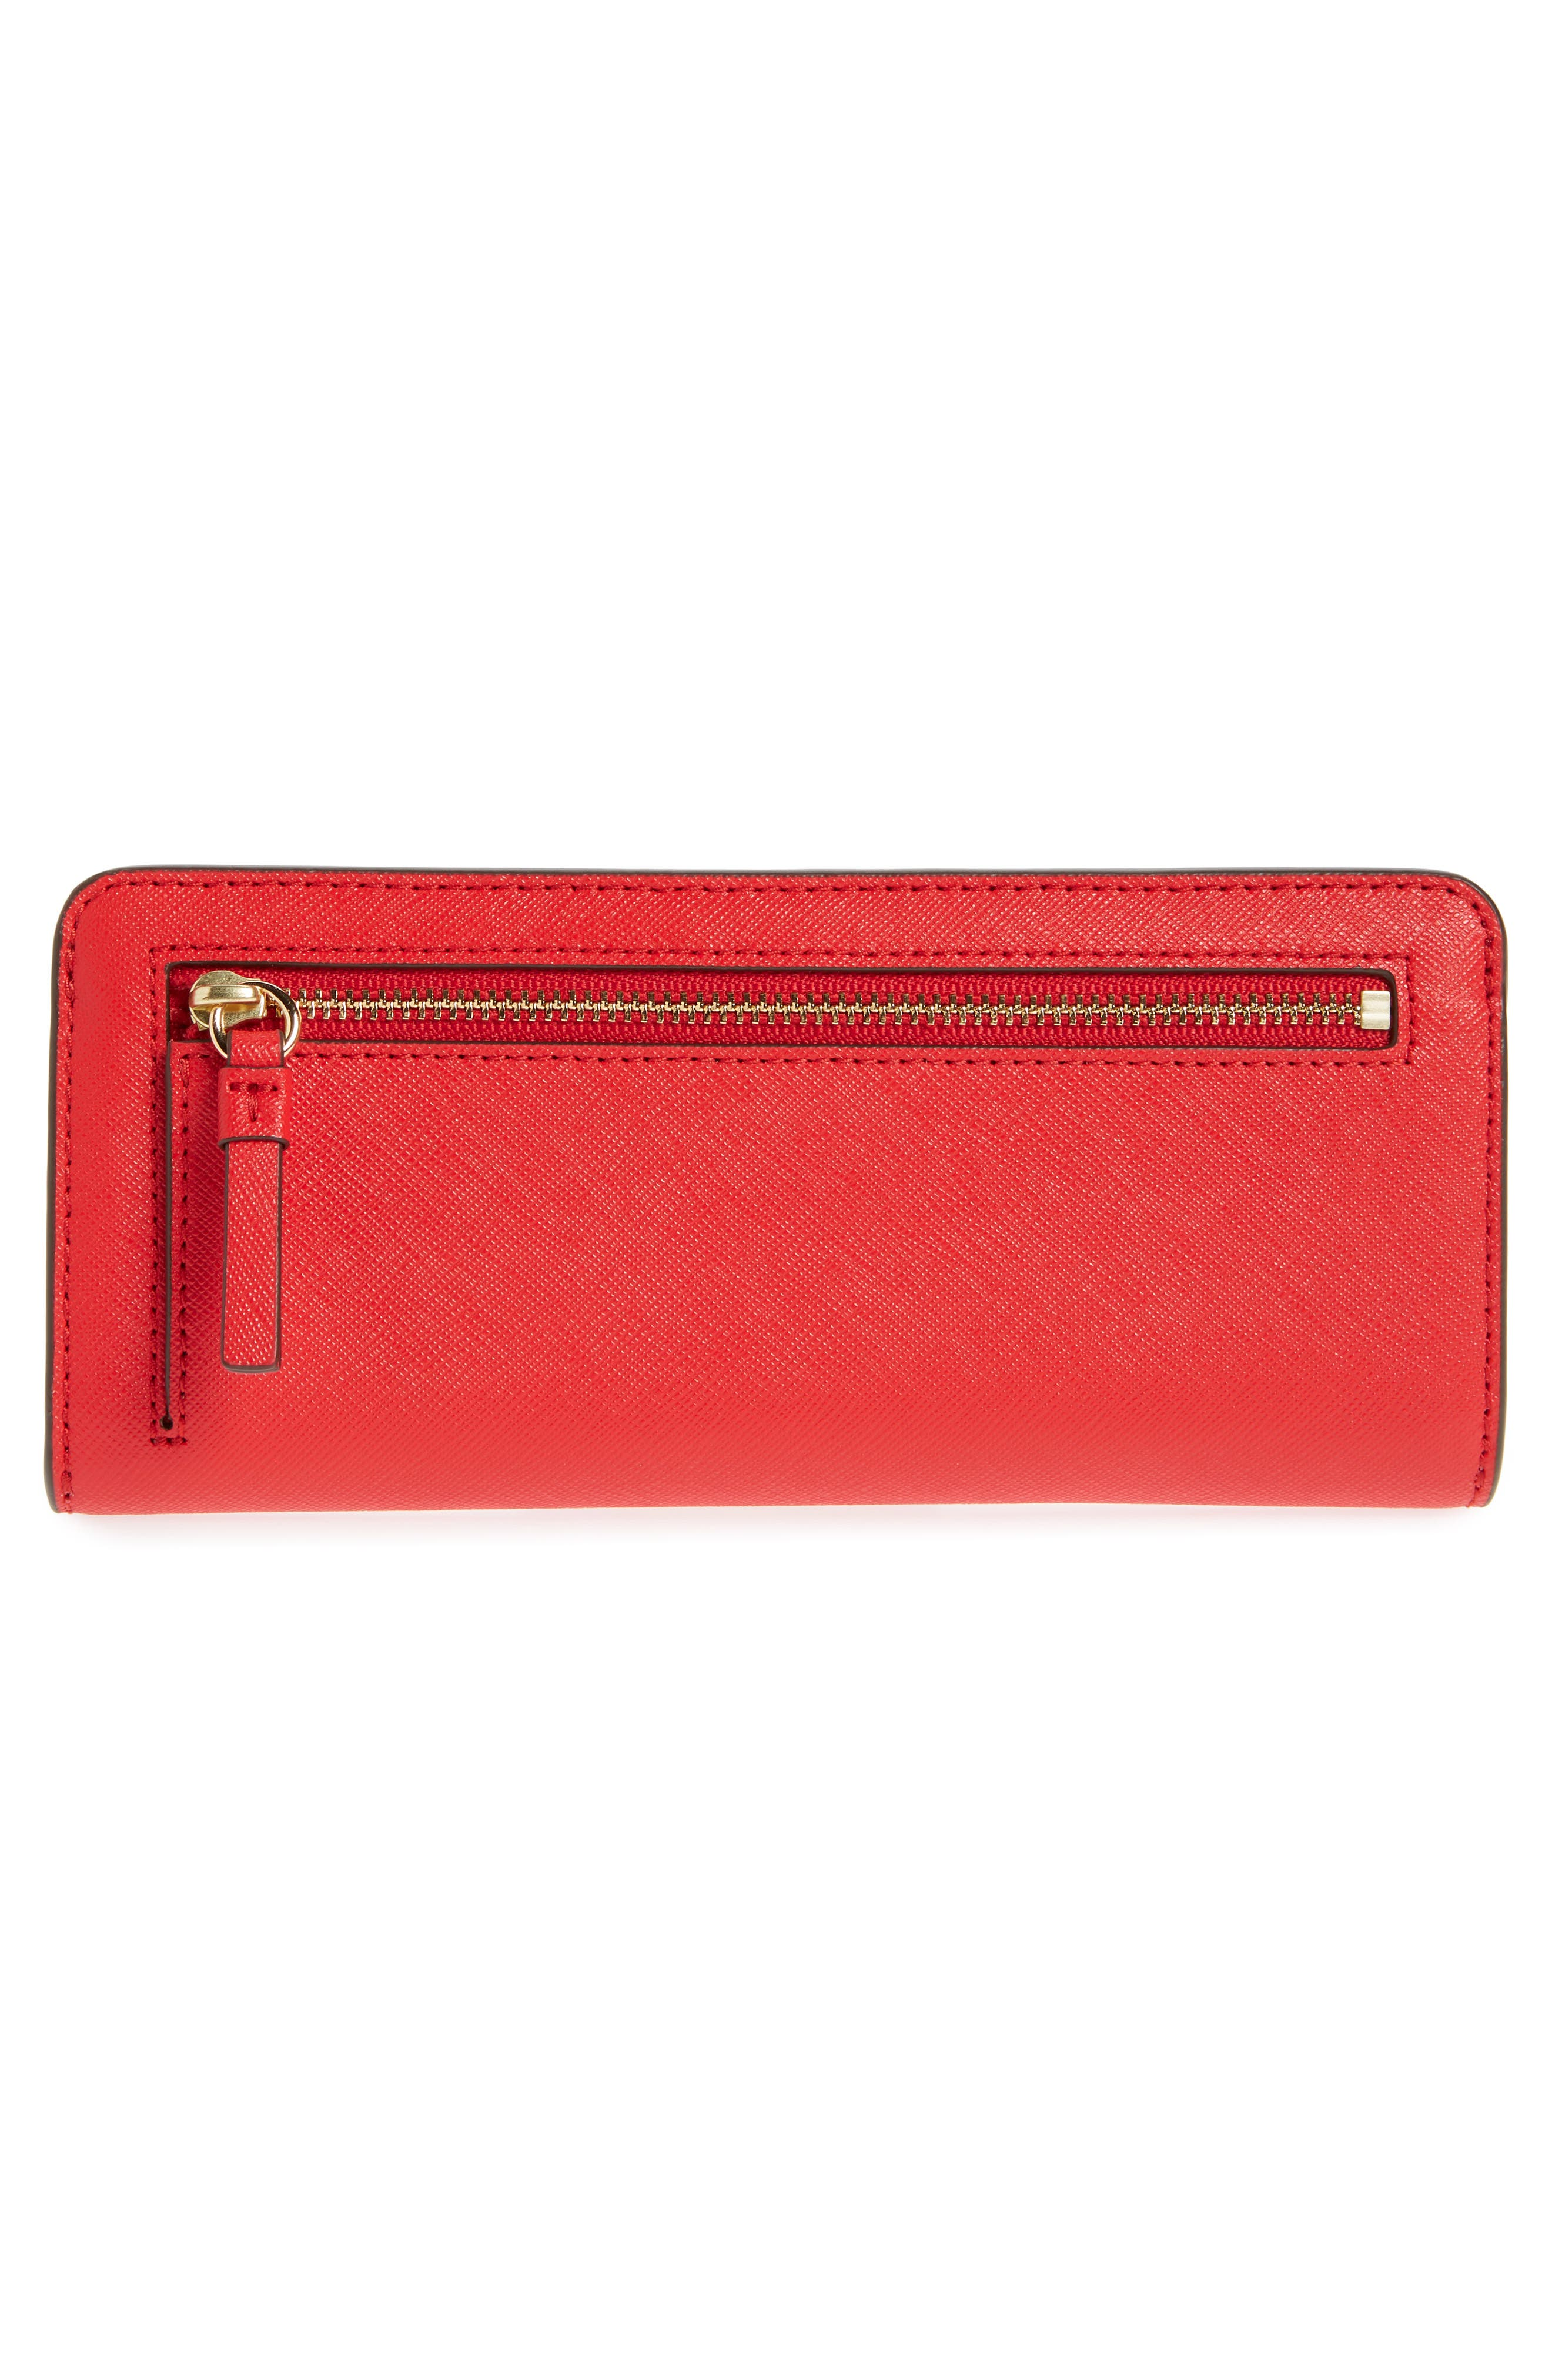 Robinson Saffiano Leather Continental Wallet,                             Alternate thumbnail 3, color,                             BRILLIANT RED